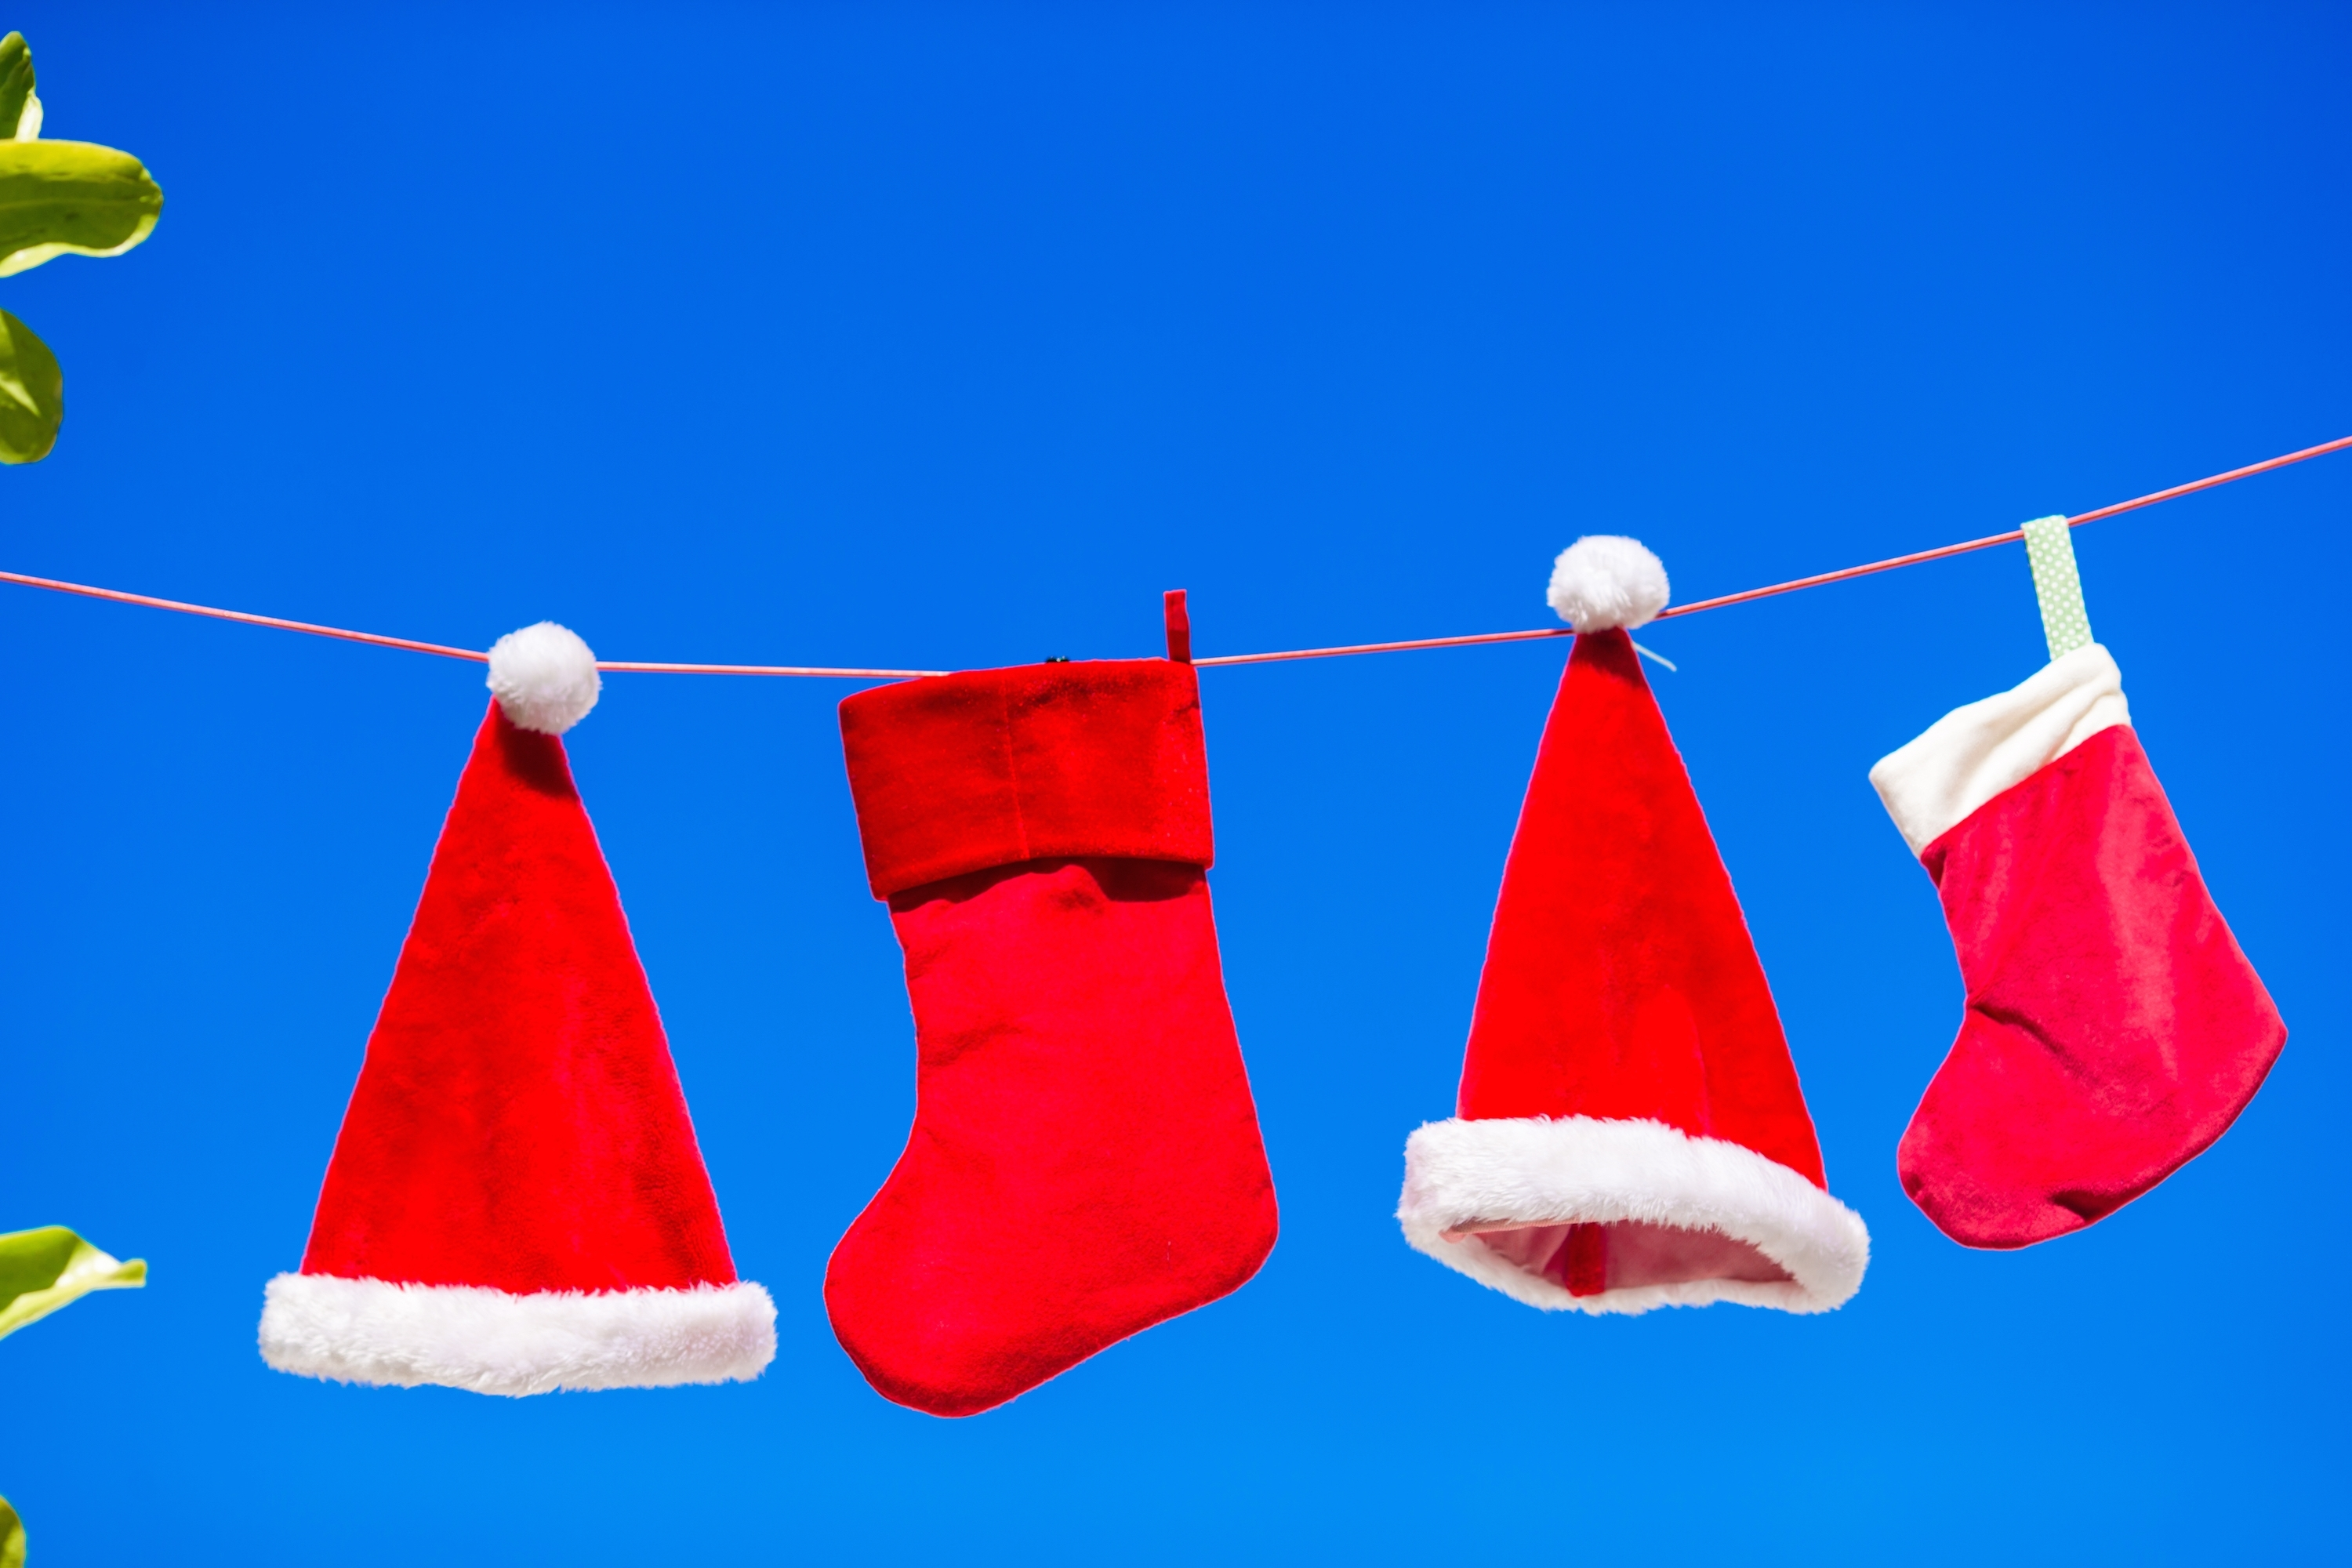 a41503370f0a437f2aa0_Christmas_Stocking.jpg